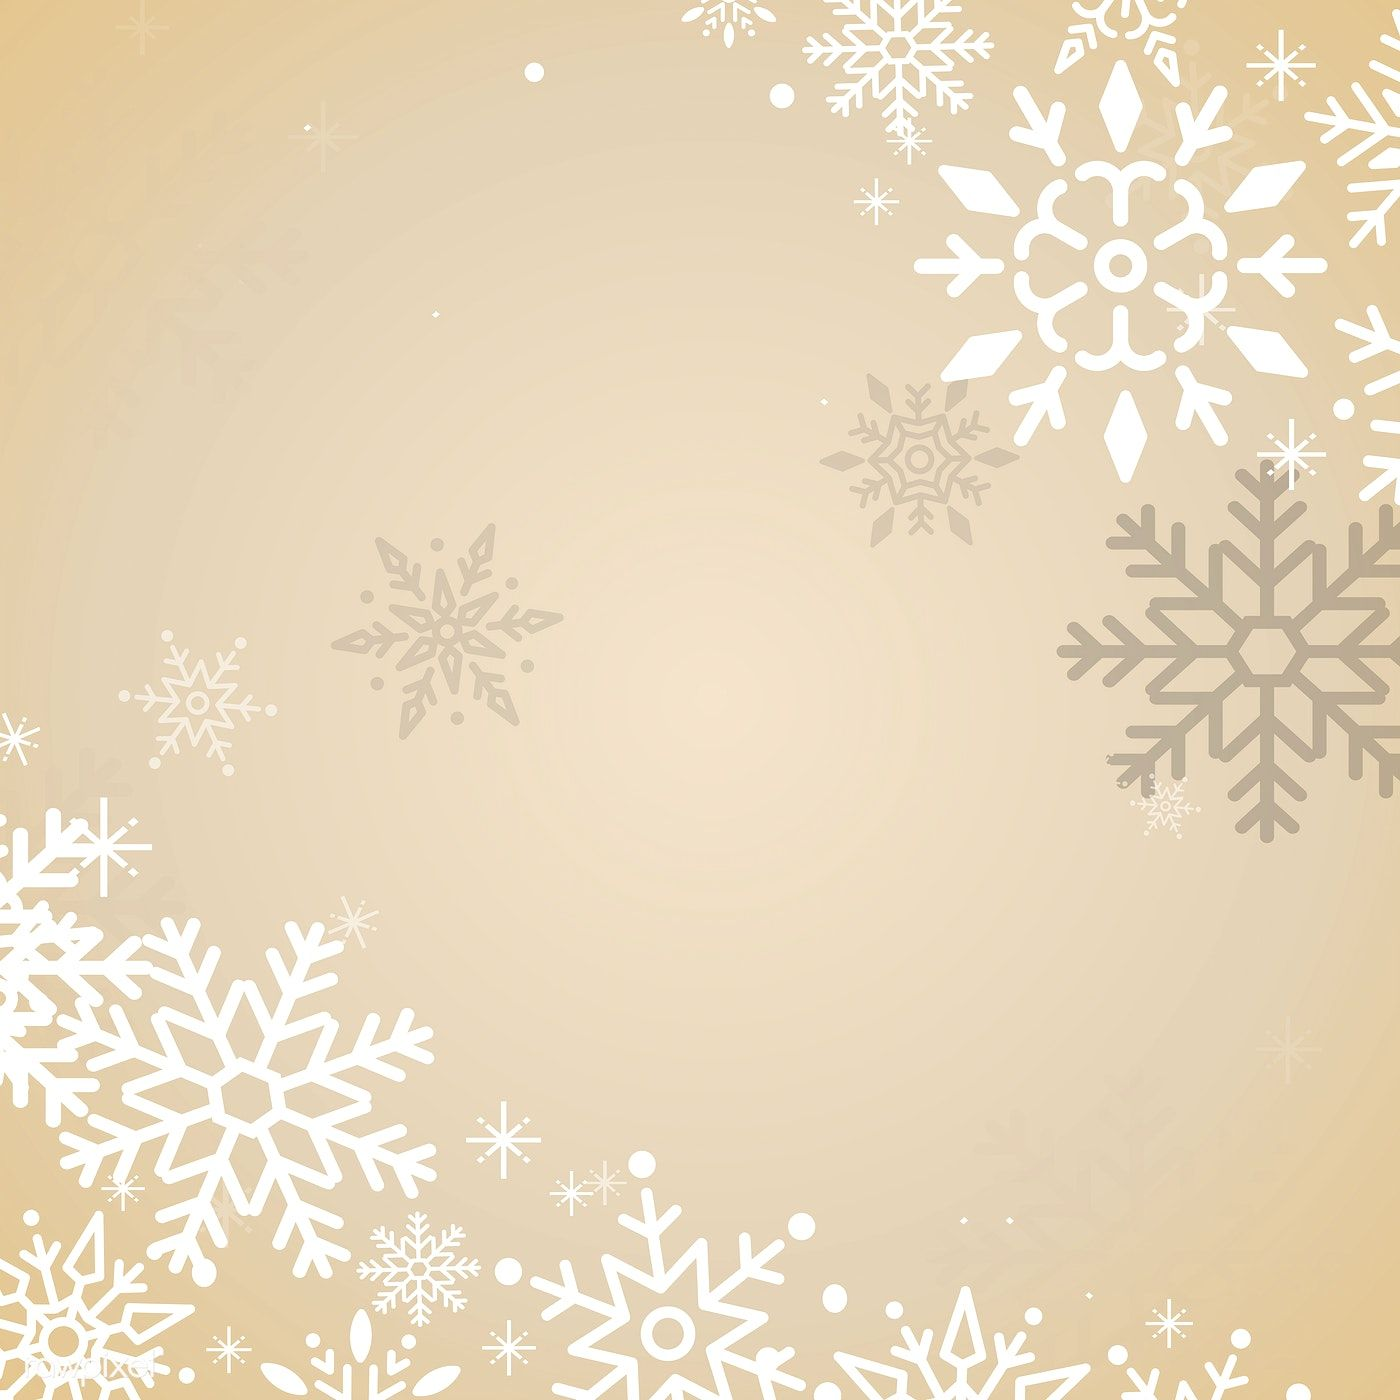 Gold Christmas winter holiday background with snowflake